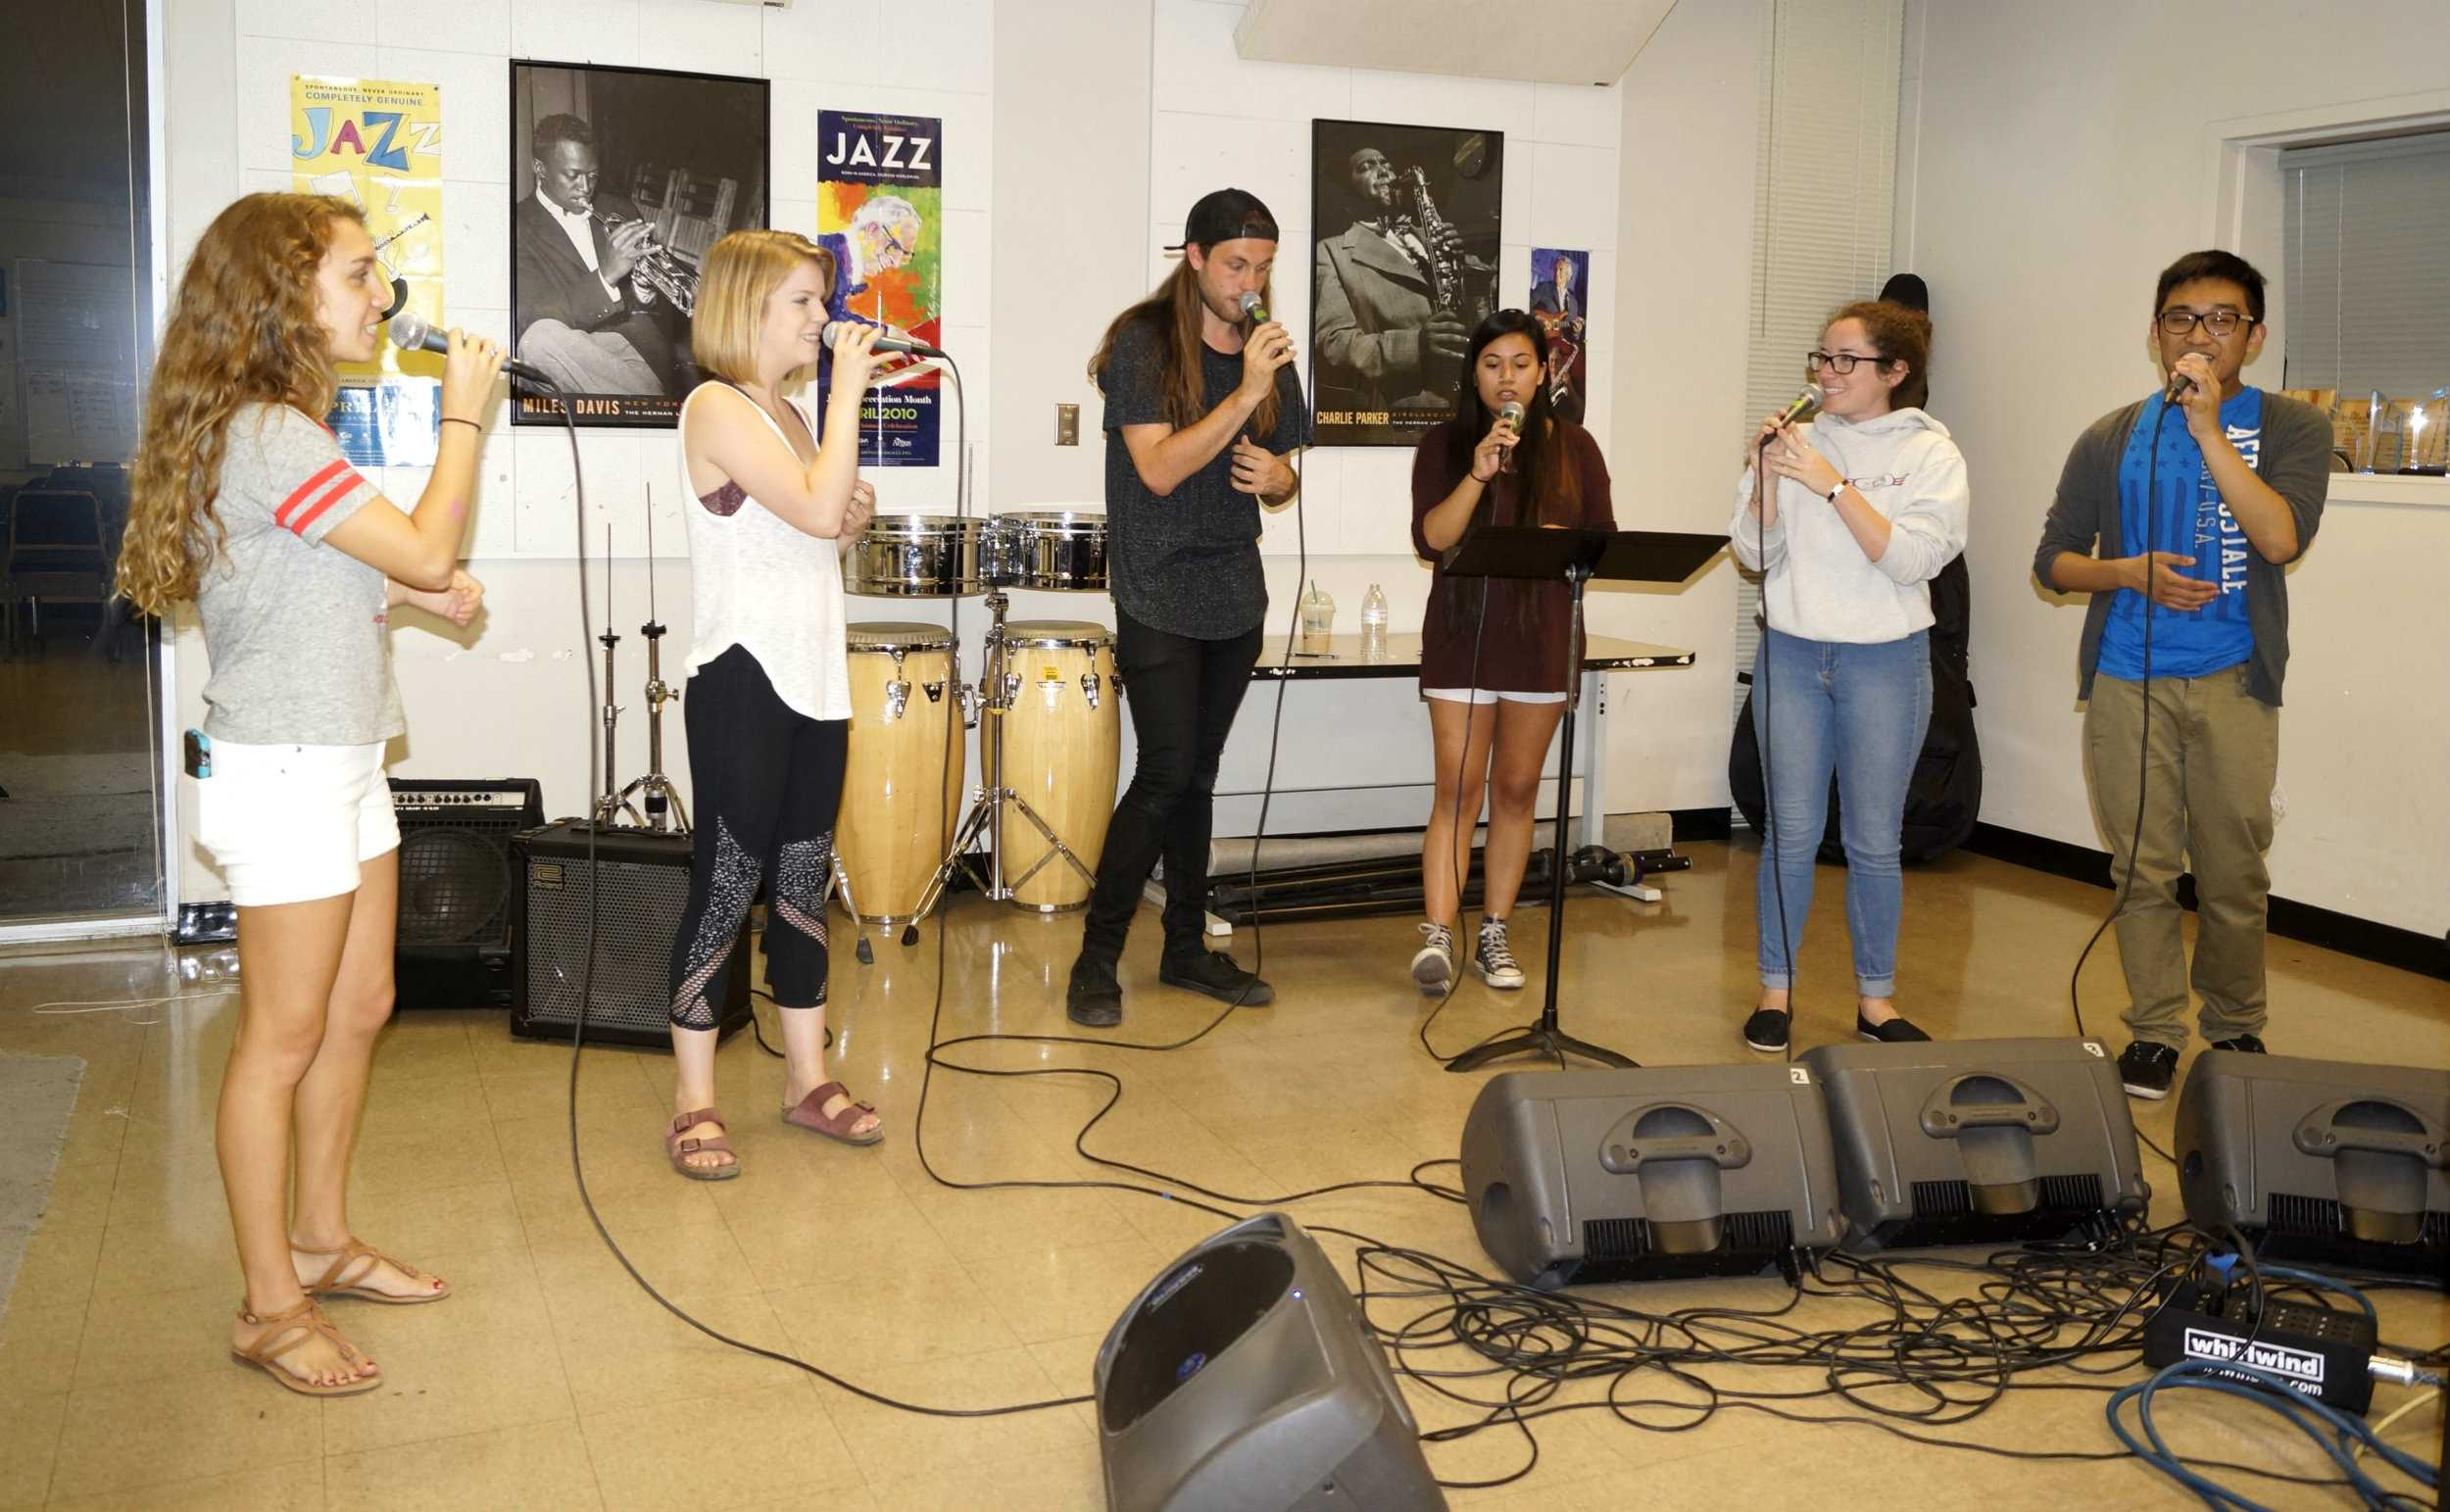 Members of jazz vocal group C-Sus Voices rehearse together to prepare for their performance at the Monterey Jazz Festival on Sunday, Sept. 18. (Photo by Marivel Guzman)